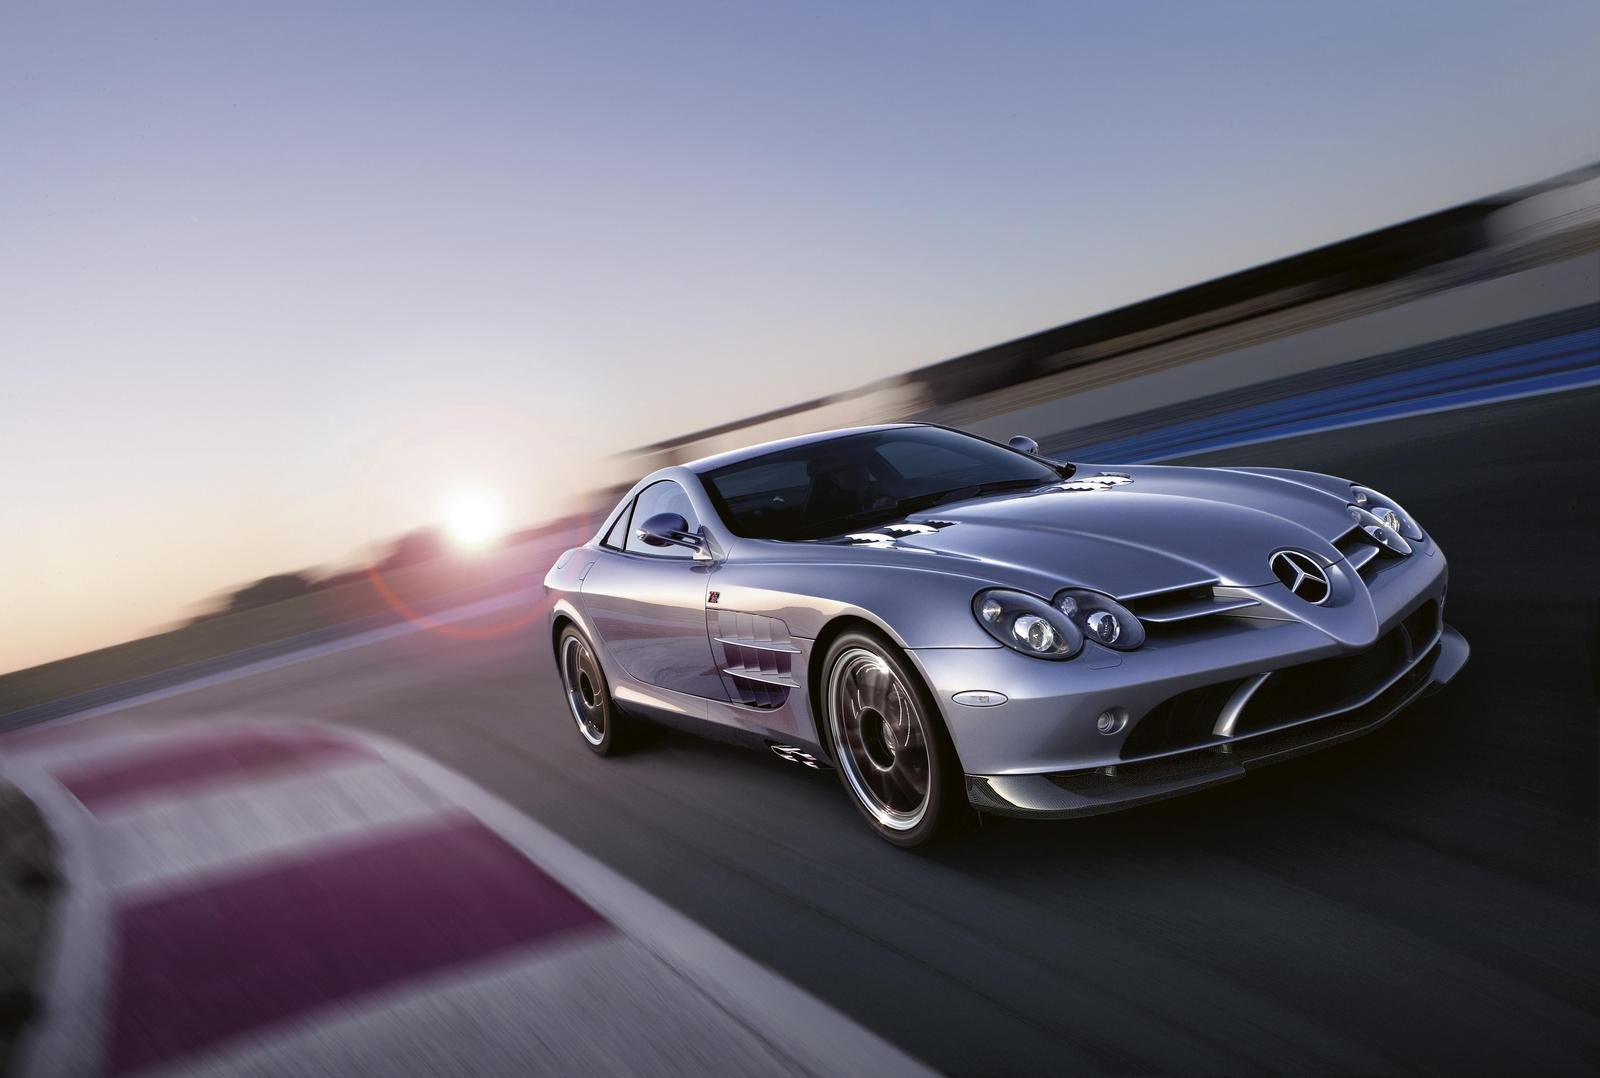 2007 mercedes benz slr mclaren 722 edition picture 142505 car review top speed. Black Bedroom Furniture Sets. Home Design Ideas